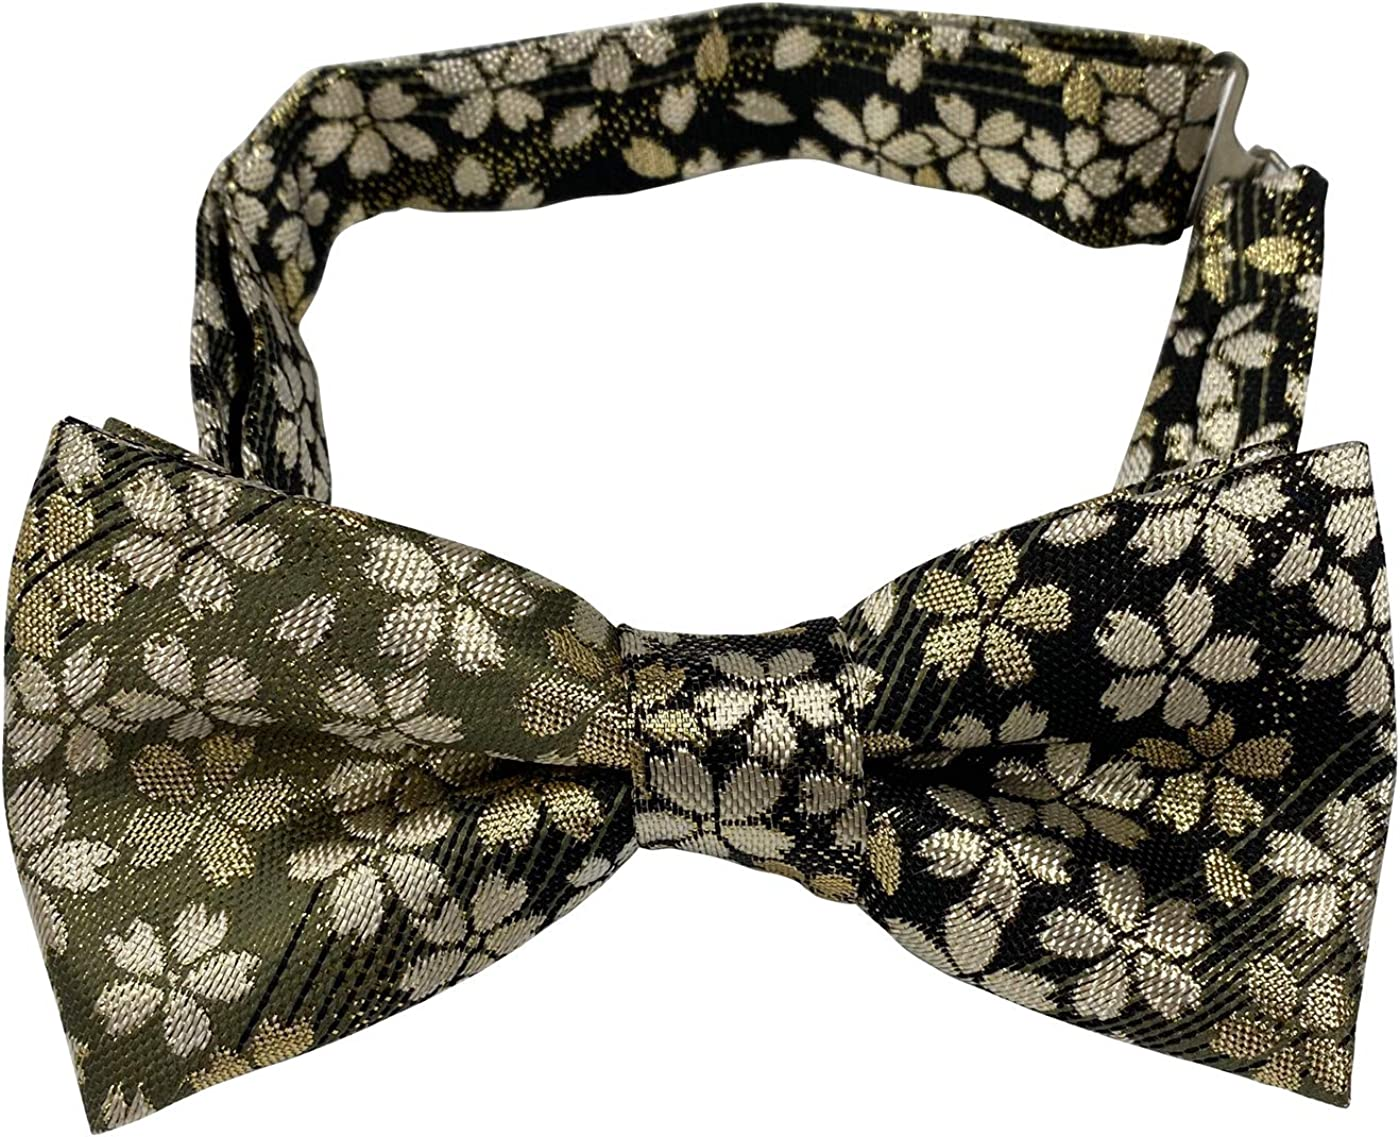 FORTUNA Tokyo Men's Pre-Tied Adjustable Butterfly Bow Tie -24. Eternal Beauty Cherry Blossoms Pattern Made in Japan